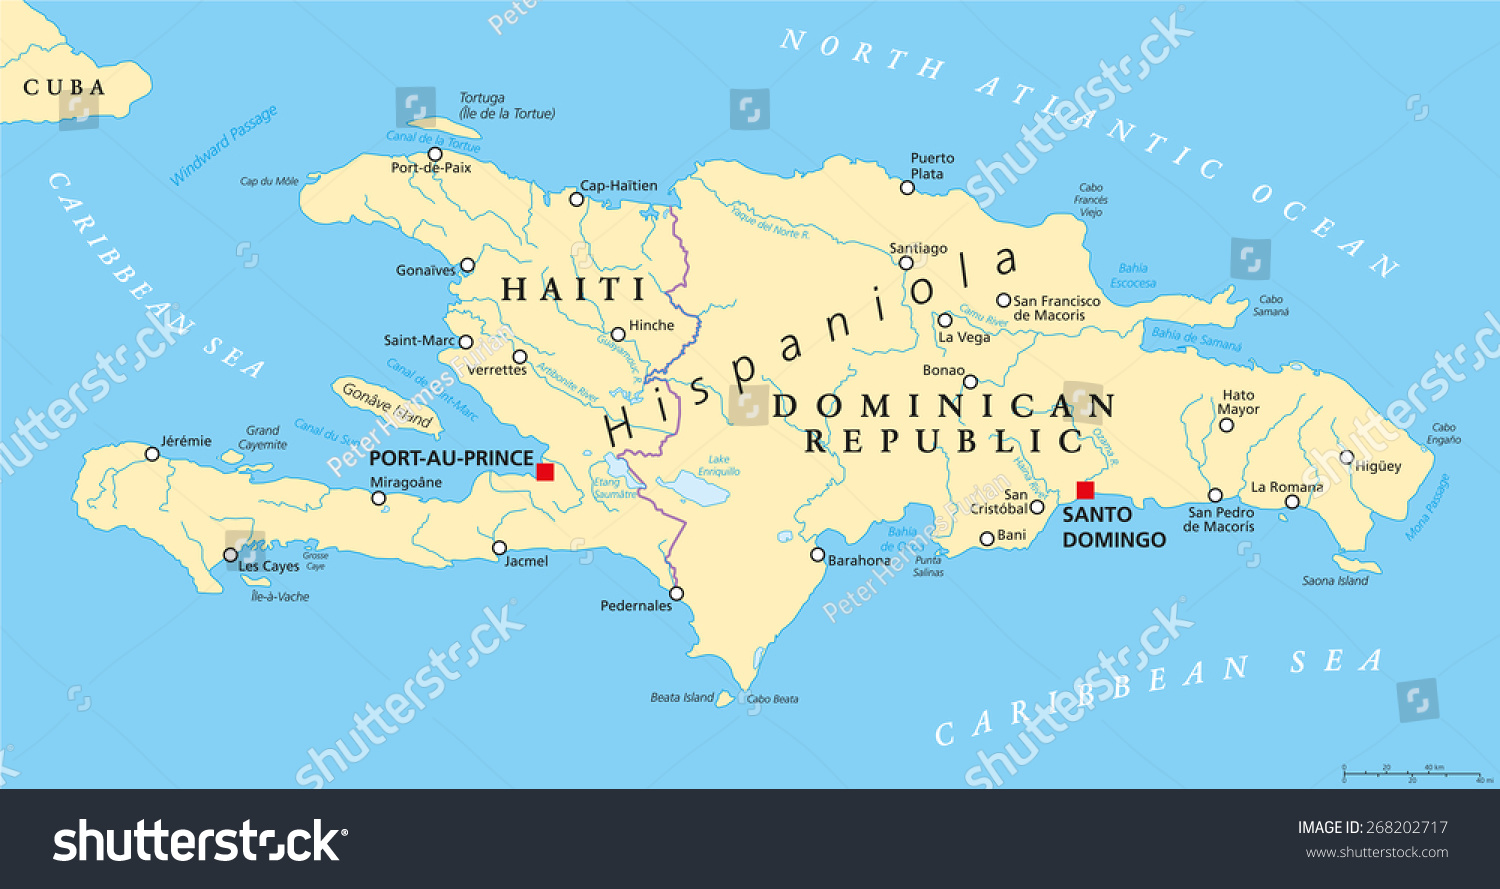 map of dominican republic islands diagrams free images about